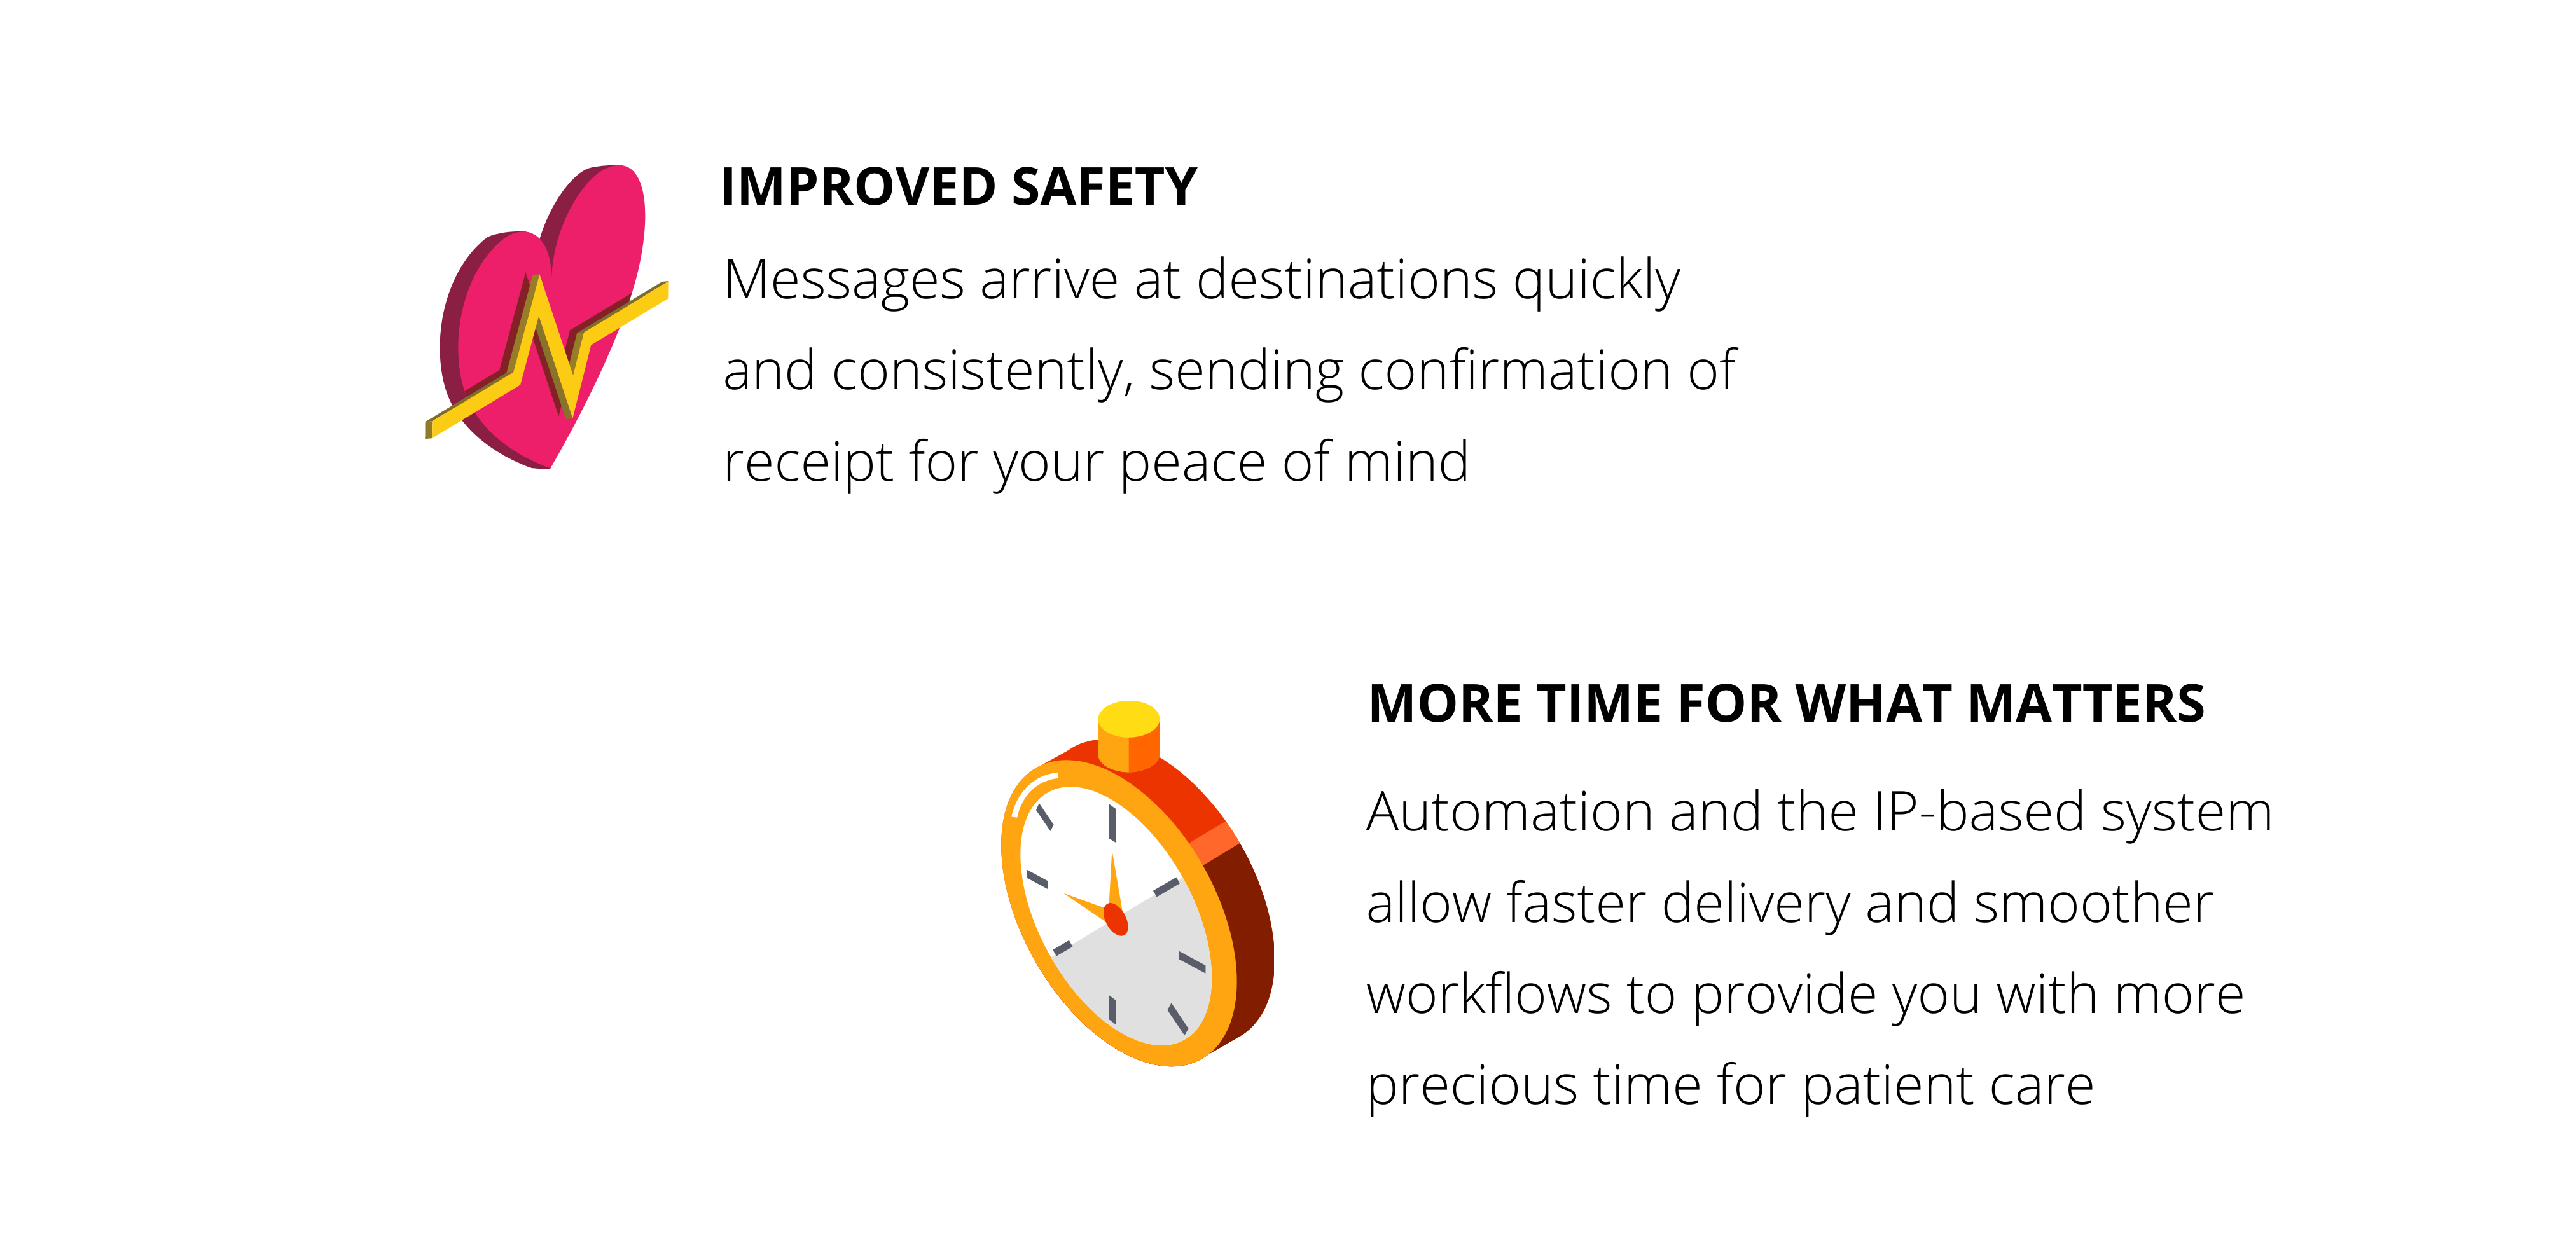 Improved Safety and More time for what matters